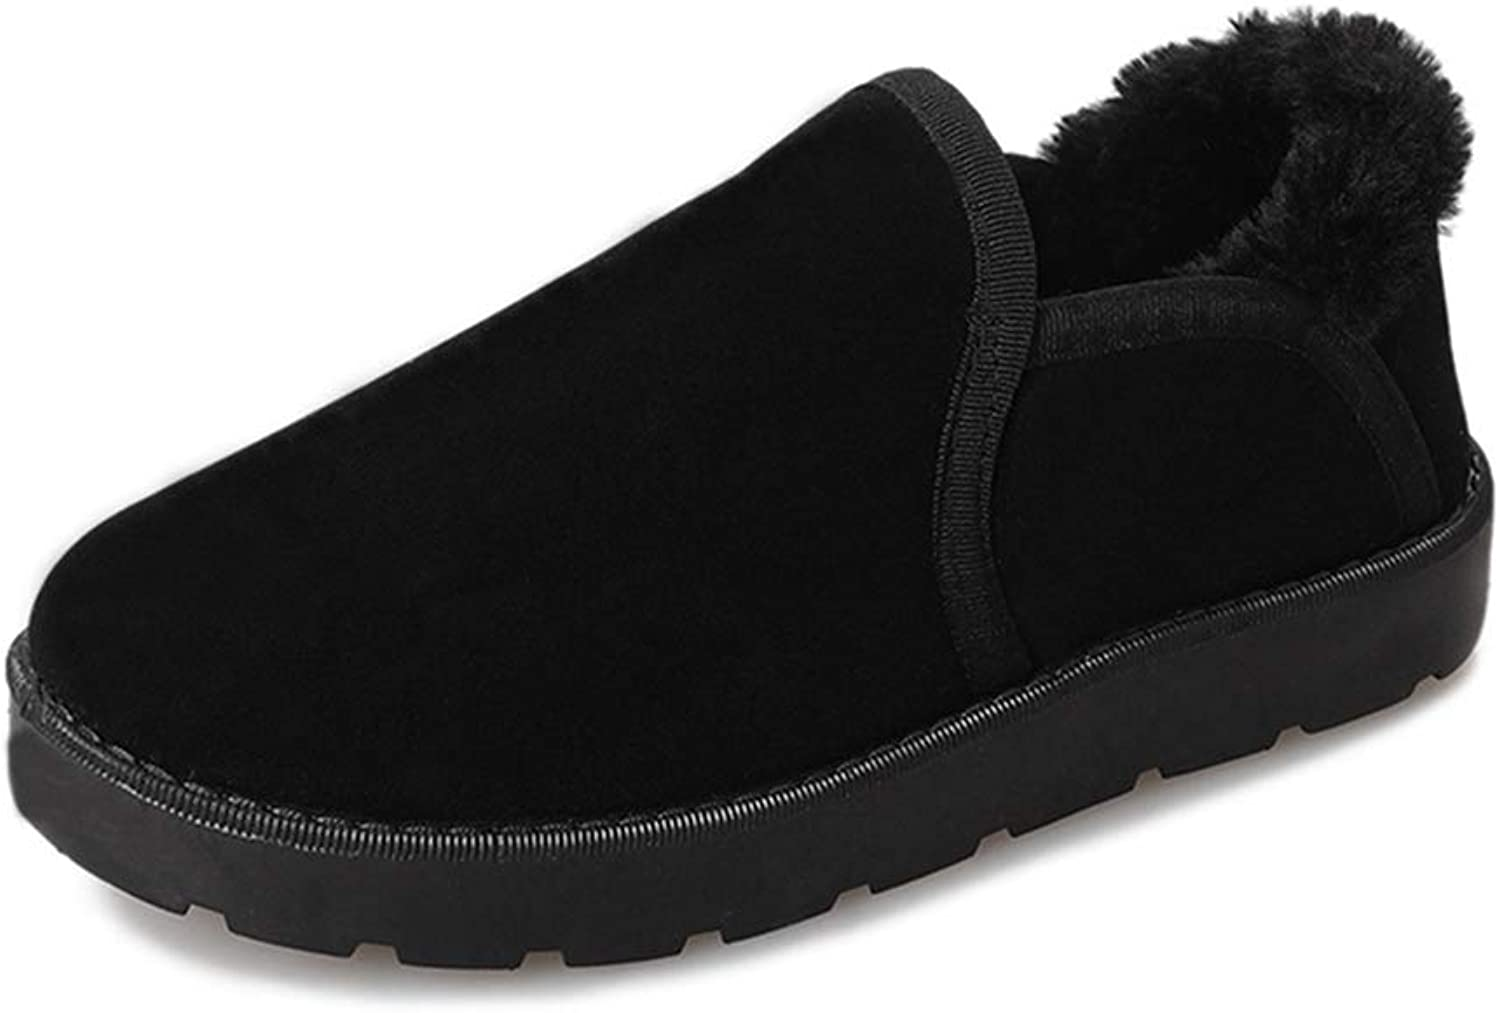 SANOMY Ankle Wrap Slippers Women Soft Warm Plush Cotton Indoor Outdoor shoes Furry Fur Winter Floor Flats